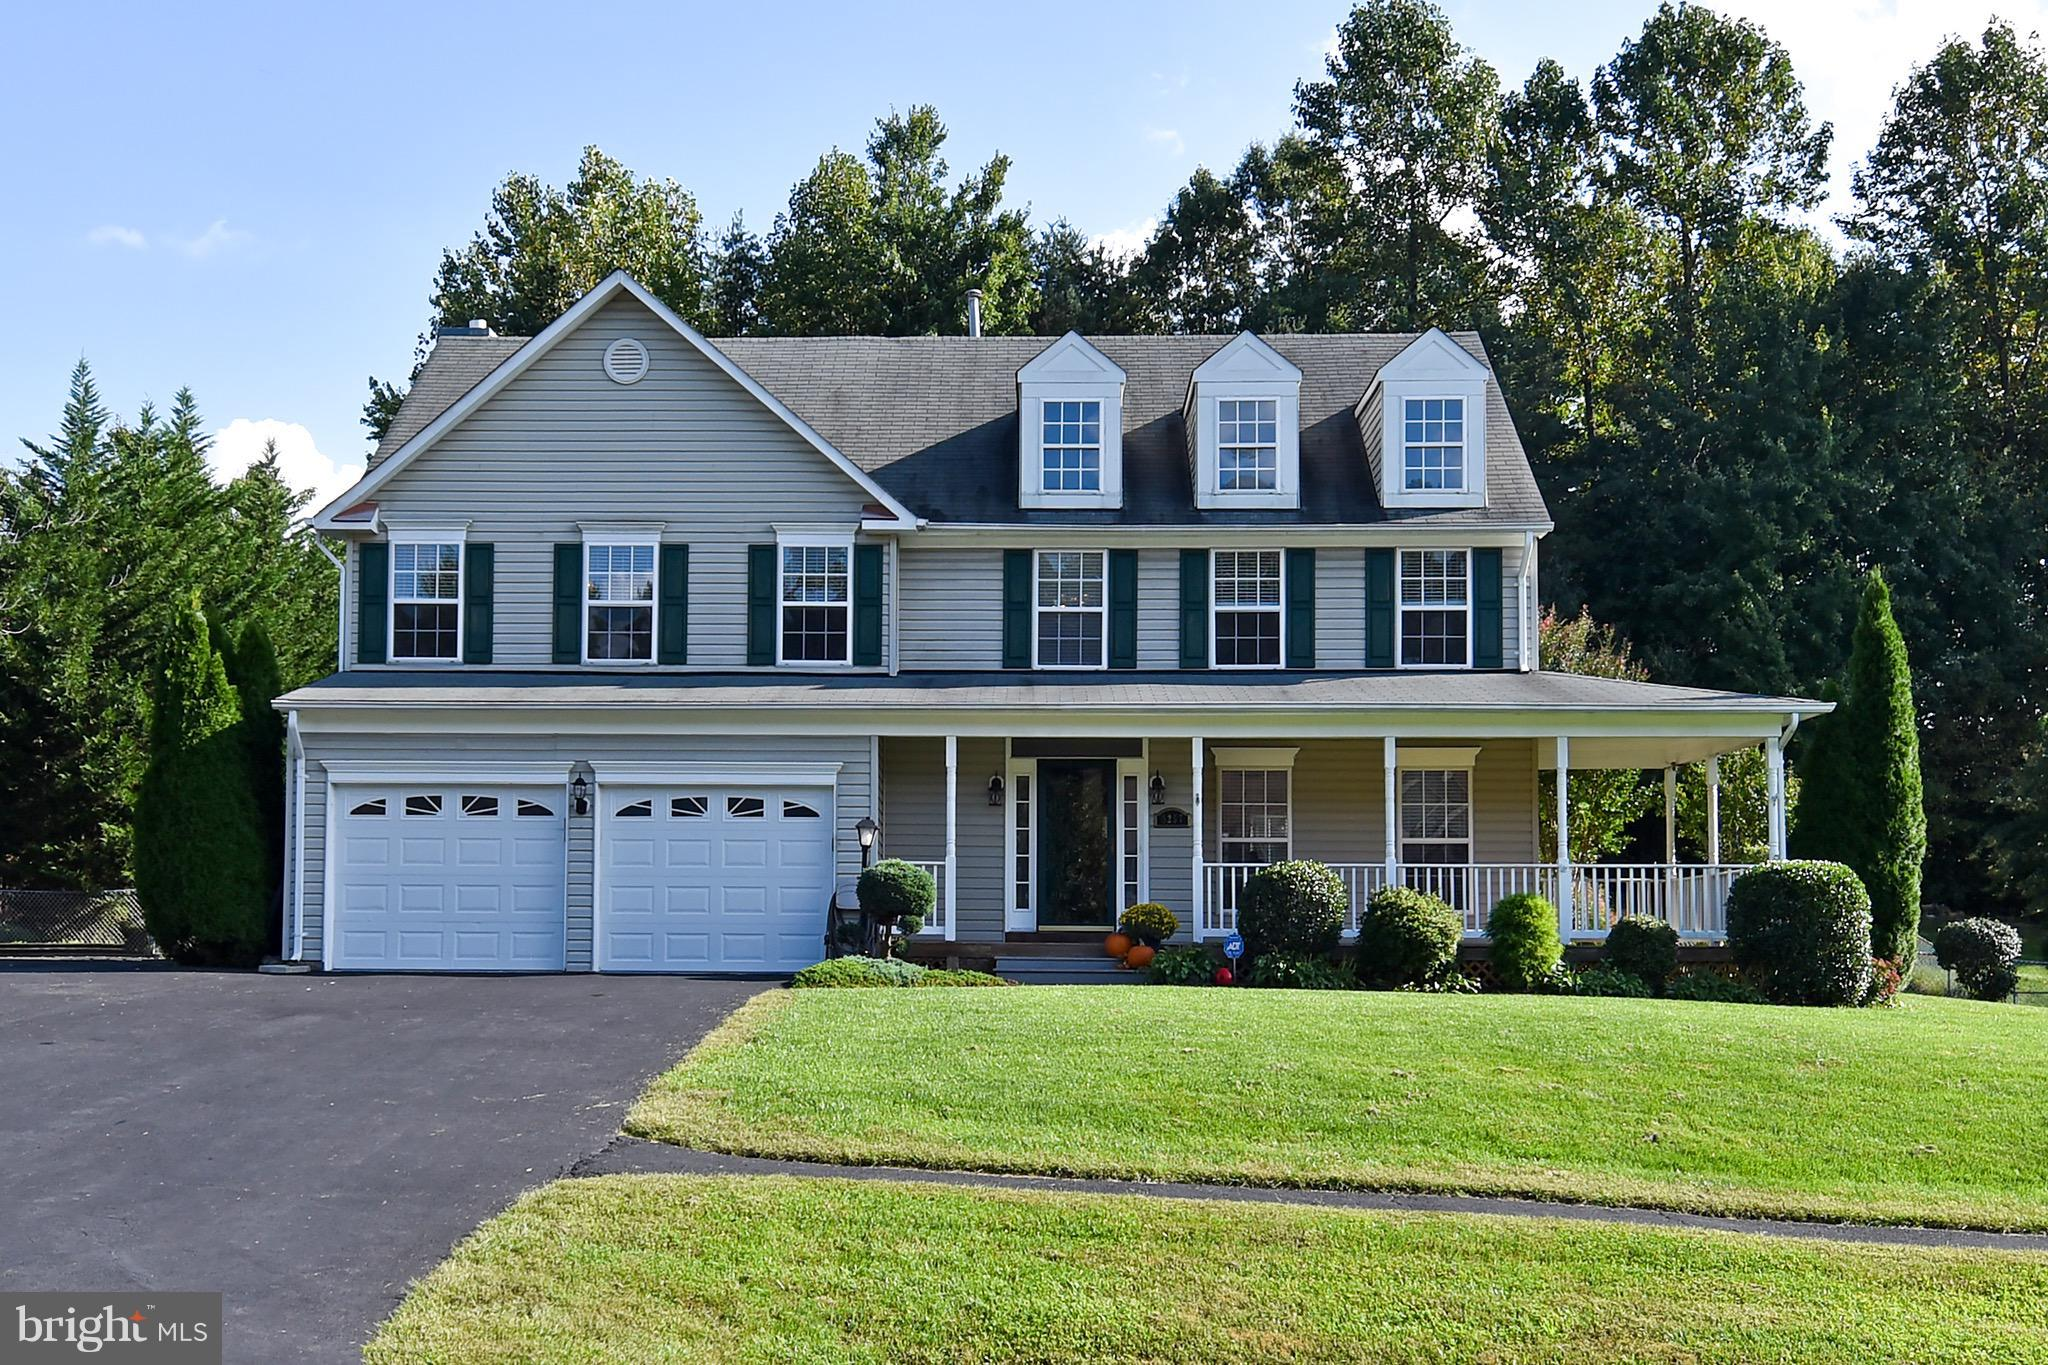 6 BEDROOMS, 3.5 BATHS AND OVER 3,300 SQUARE FEET! UPGRADES INCLUDE UPDATED KITCHEN W/HEATED TILE & STAINLESS STEEL APPLIANCES,  GAS FIREPLACE, NEWER ROOF, NEWER HVAC & APPLIANCES, WRAP AROUND PORCH & EXTENDED DRIVEWAY, 2 SHEDS, PRIVATE BACKYARD, COVERED PATIO AND MUCH MORE..NO HOA! COLGAN HS DISTRICT!